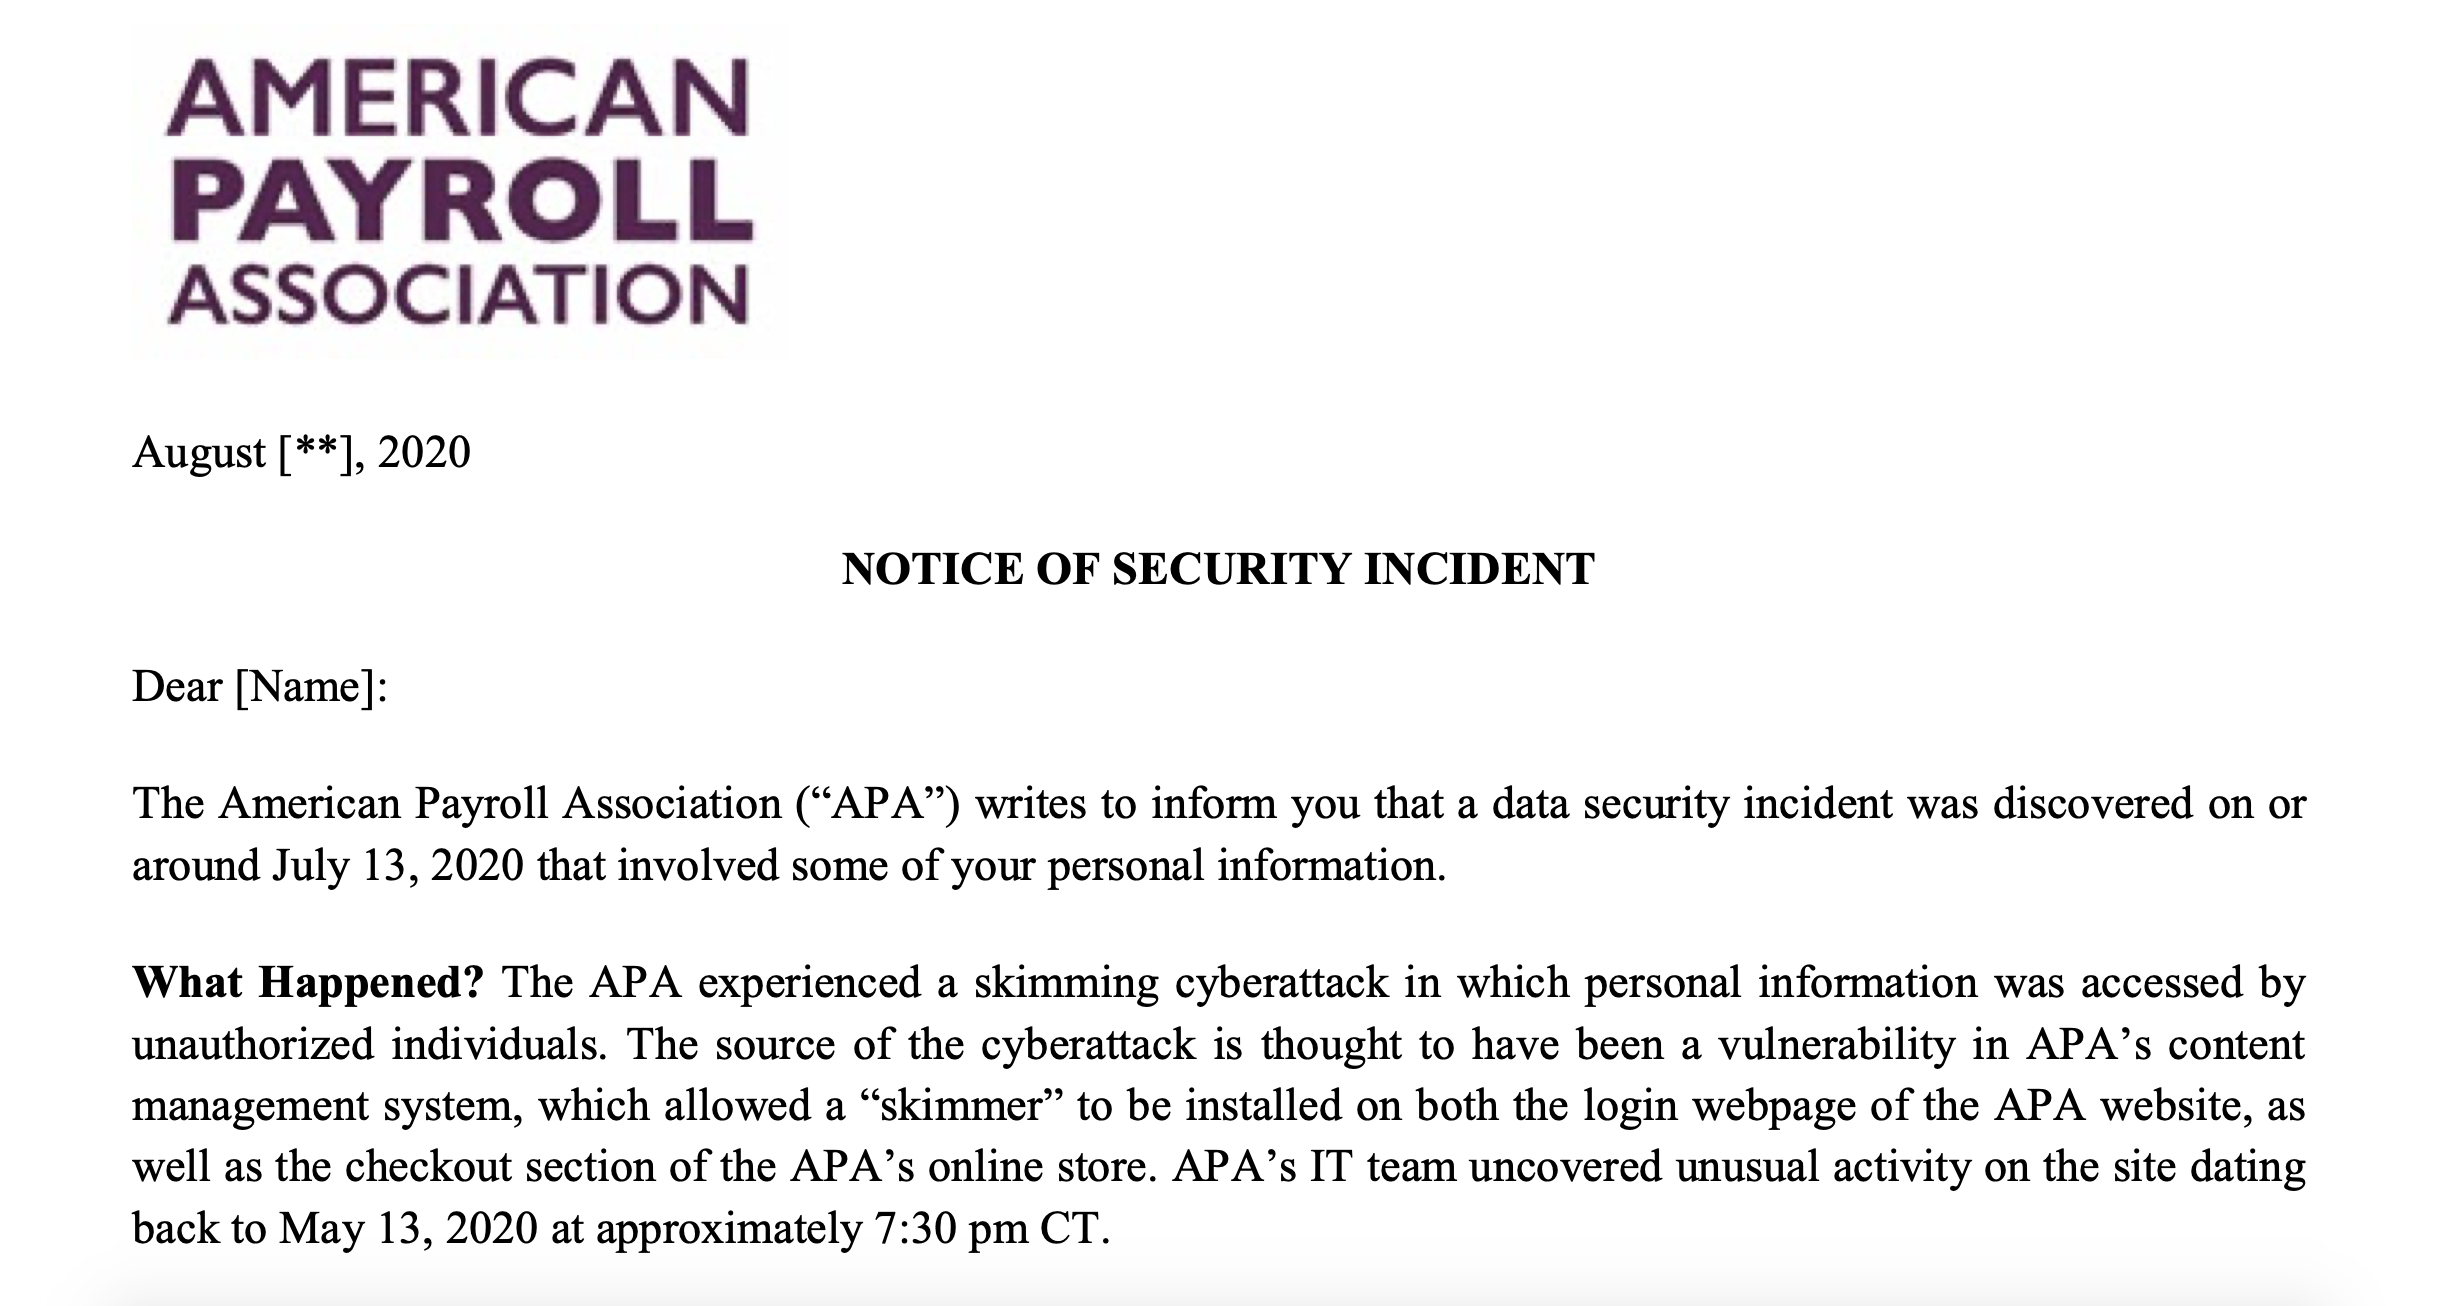 American Payroll Association Notice of Security Incident